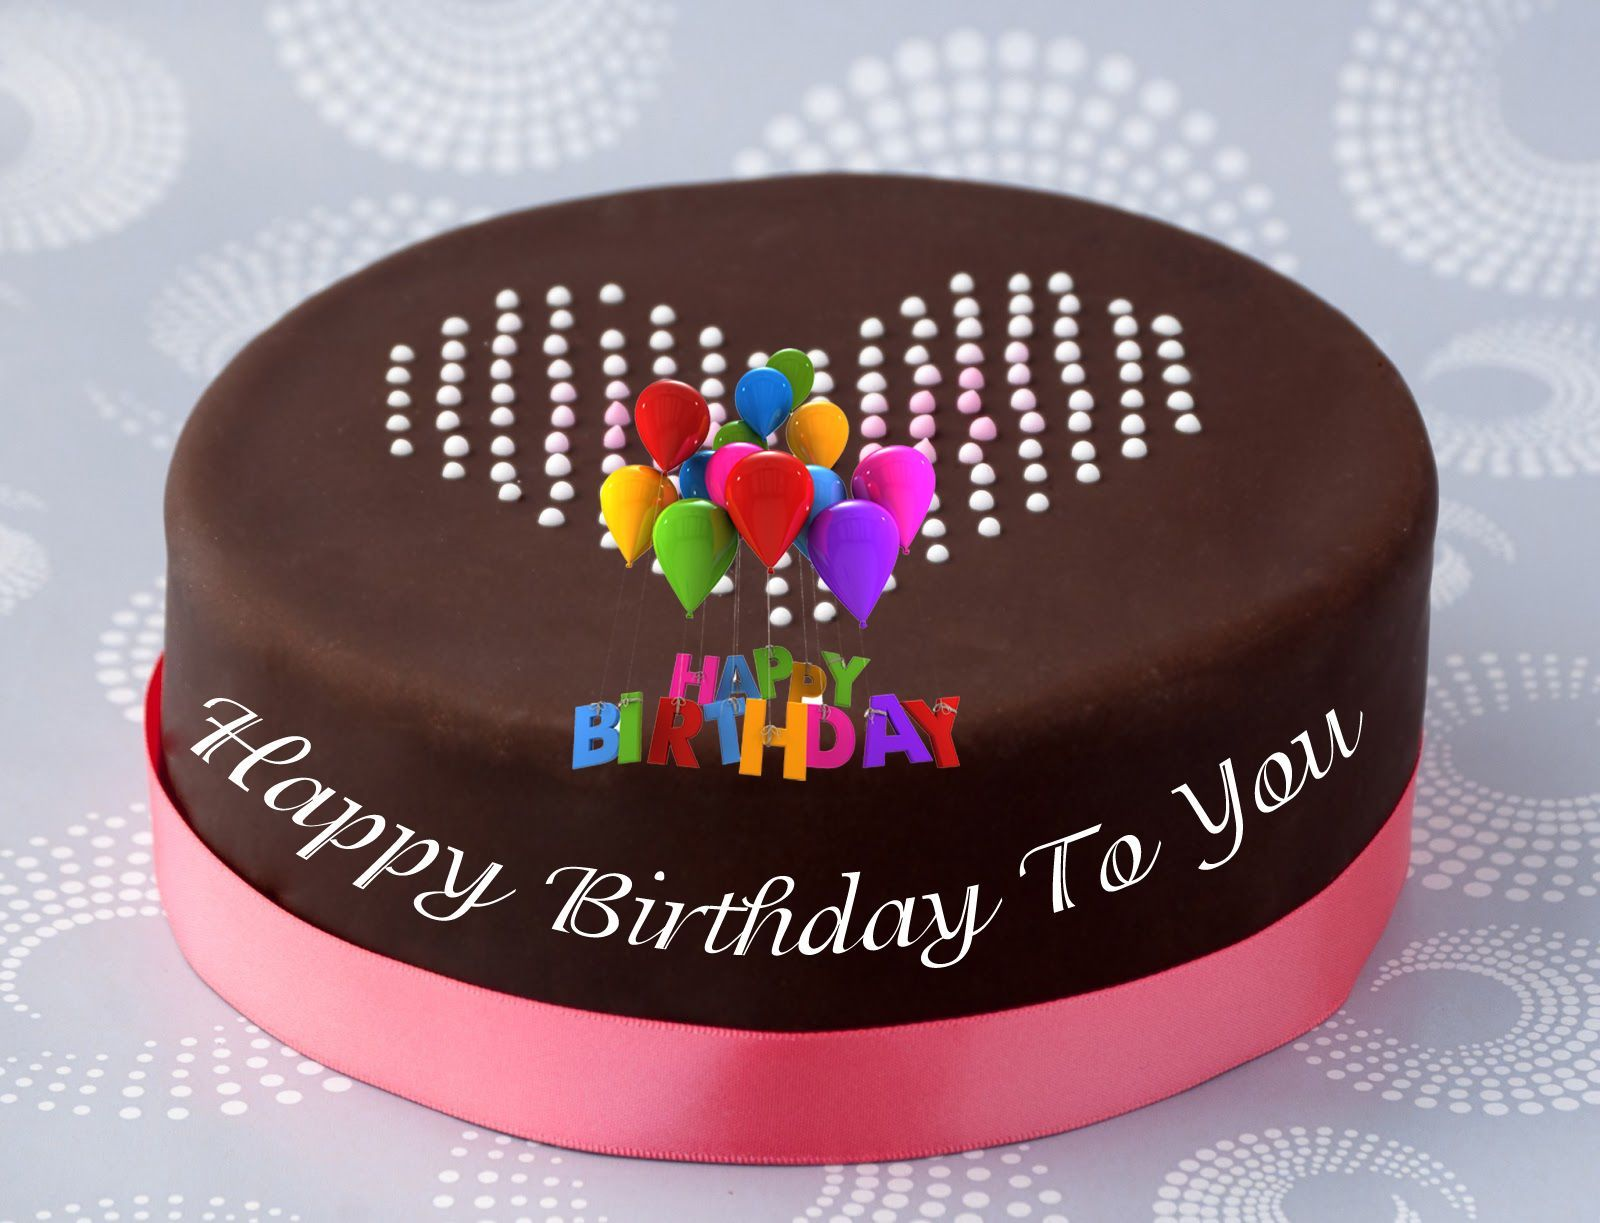 Birthday Cake Of Images Download : Happy Birthday Cake Images Free Download Happy Birthday ...